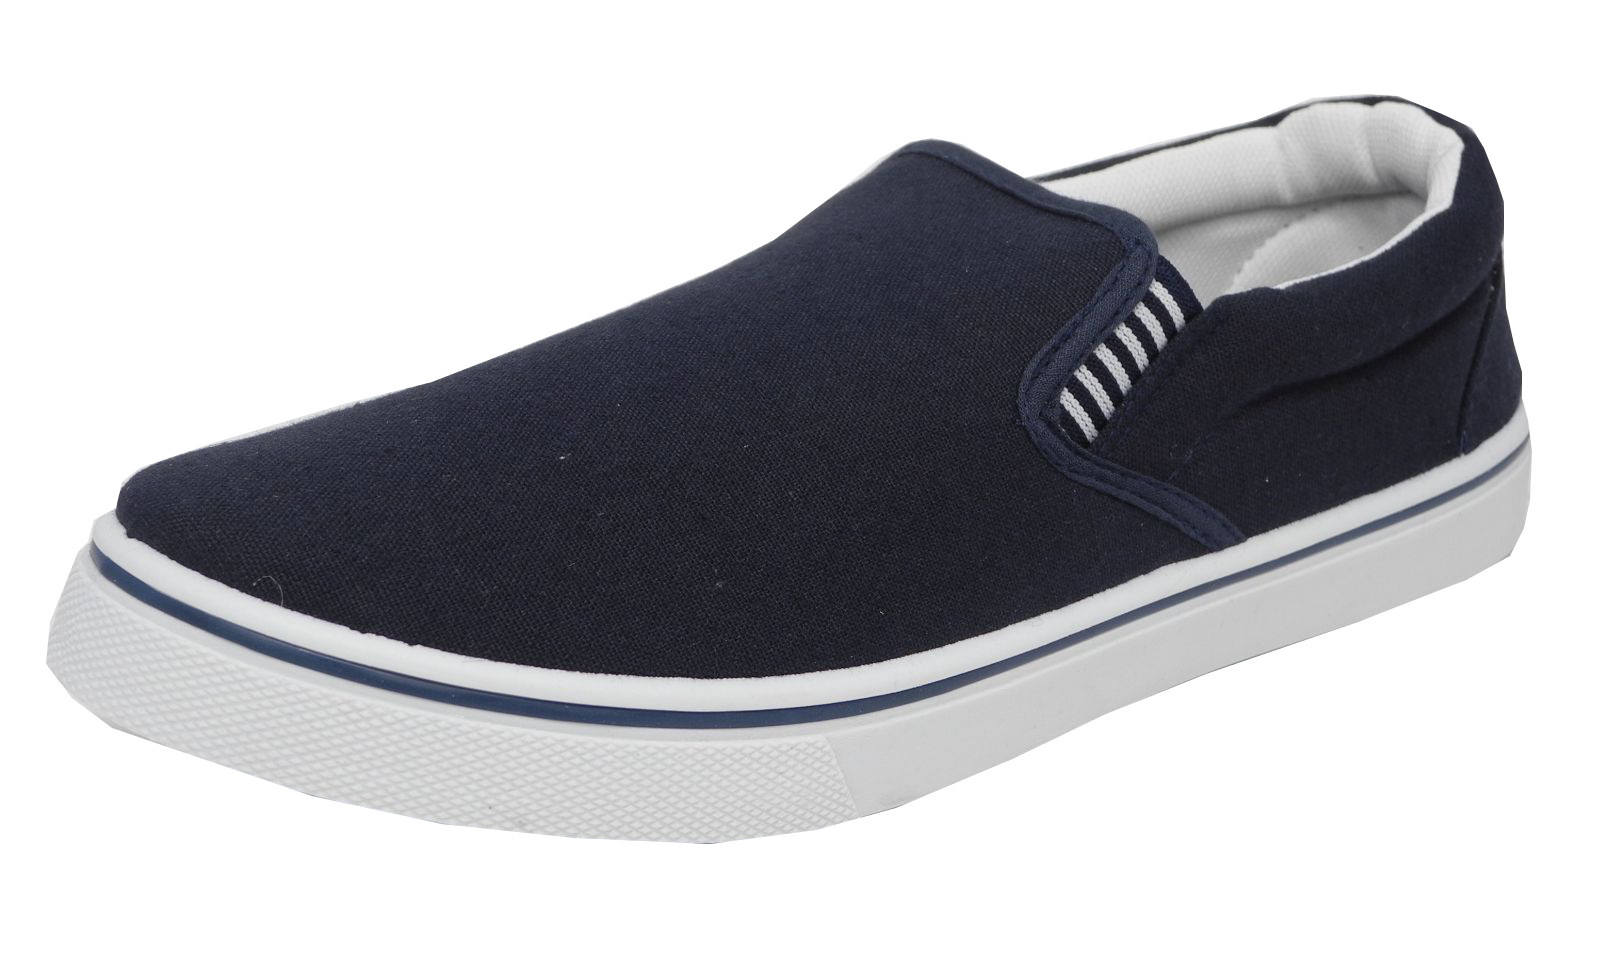 Mens Canvas Slip On Shoes Size